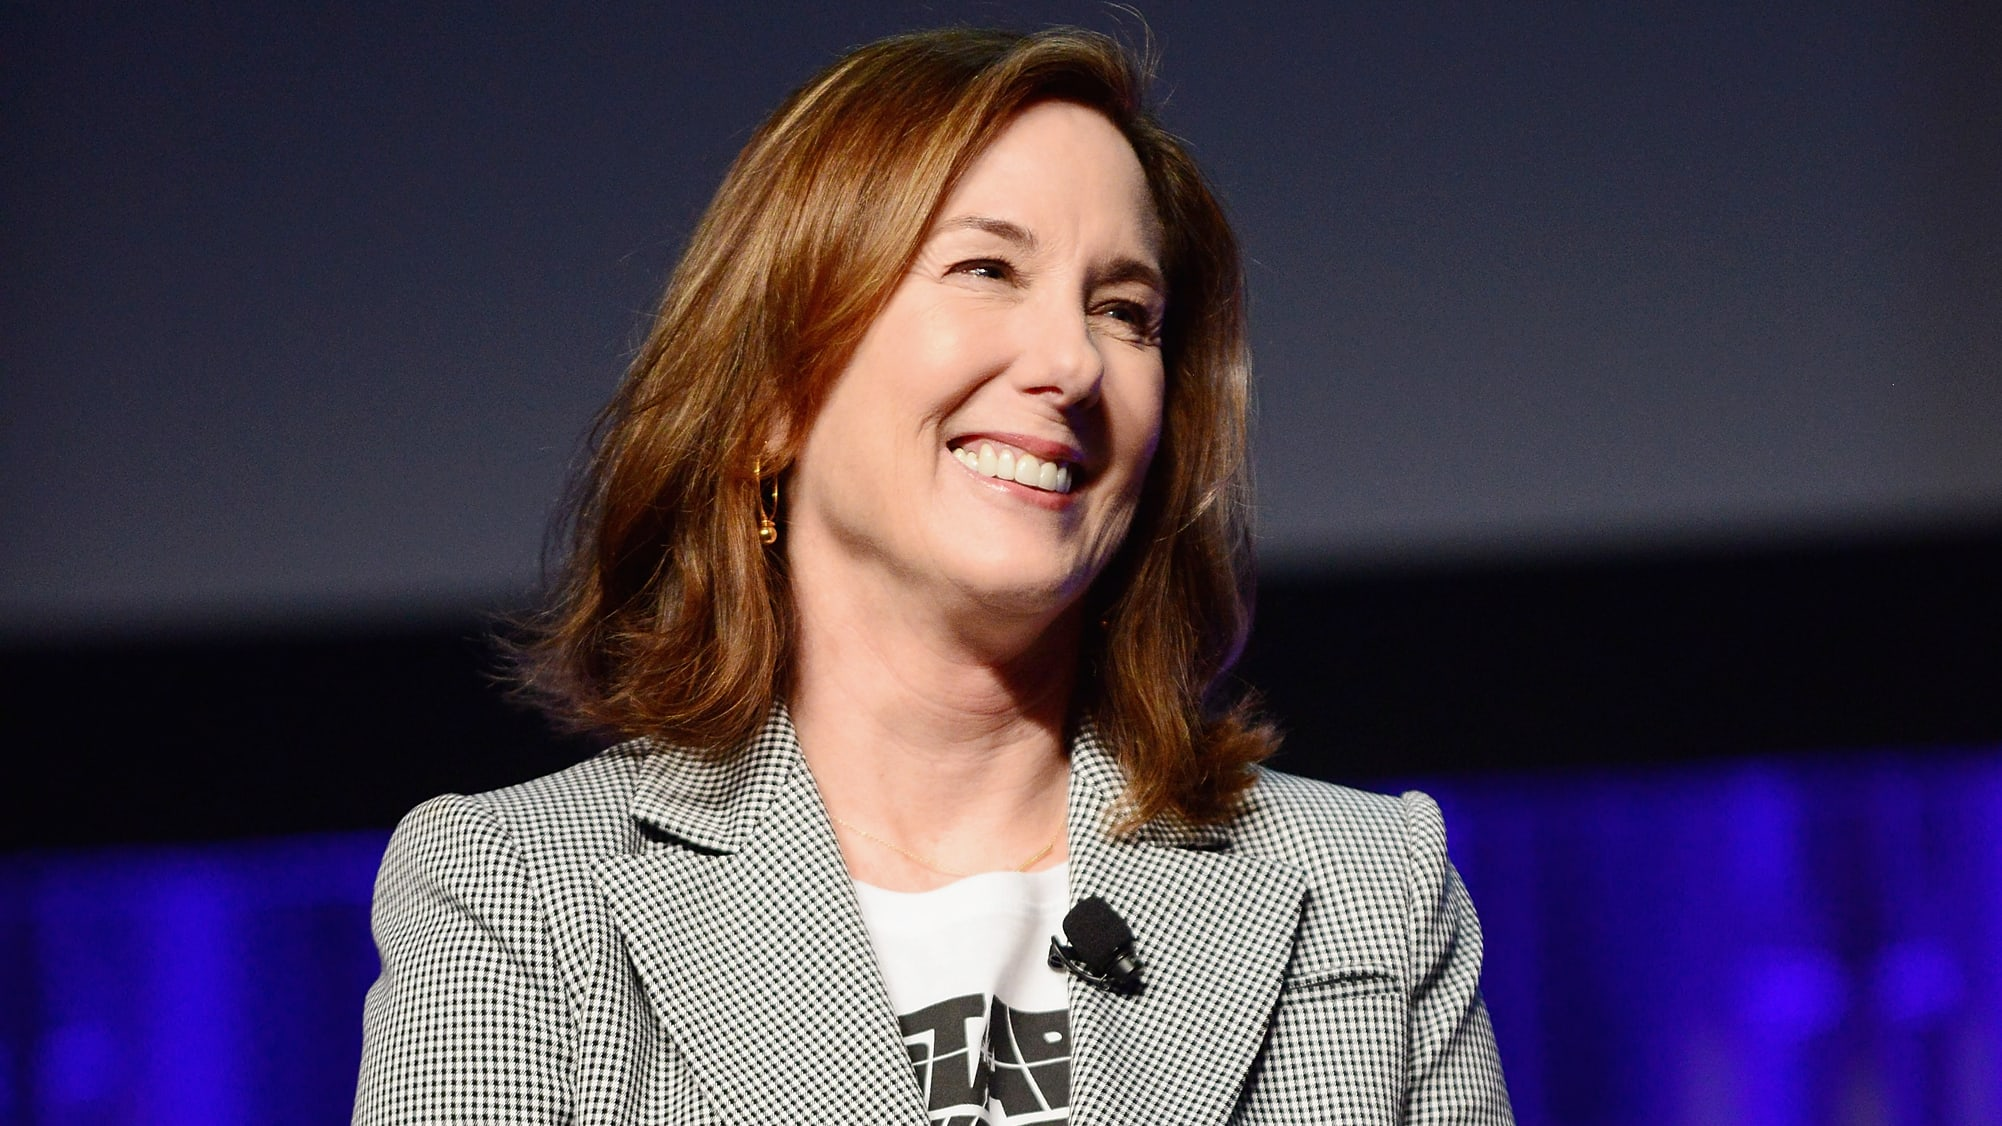 ORLANDO, FL - APRIL 13:  Kathleen Kennedy attends the 40 Years of Star Wars panel during the 2017 Star Wars Celebrationat Orange County Convention Center on April 13, 2017 in Orlando, Florida.  (Photo by Gerardo Mora/Getty Images for Disney)